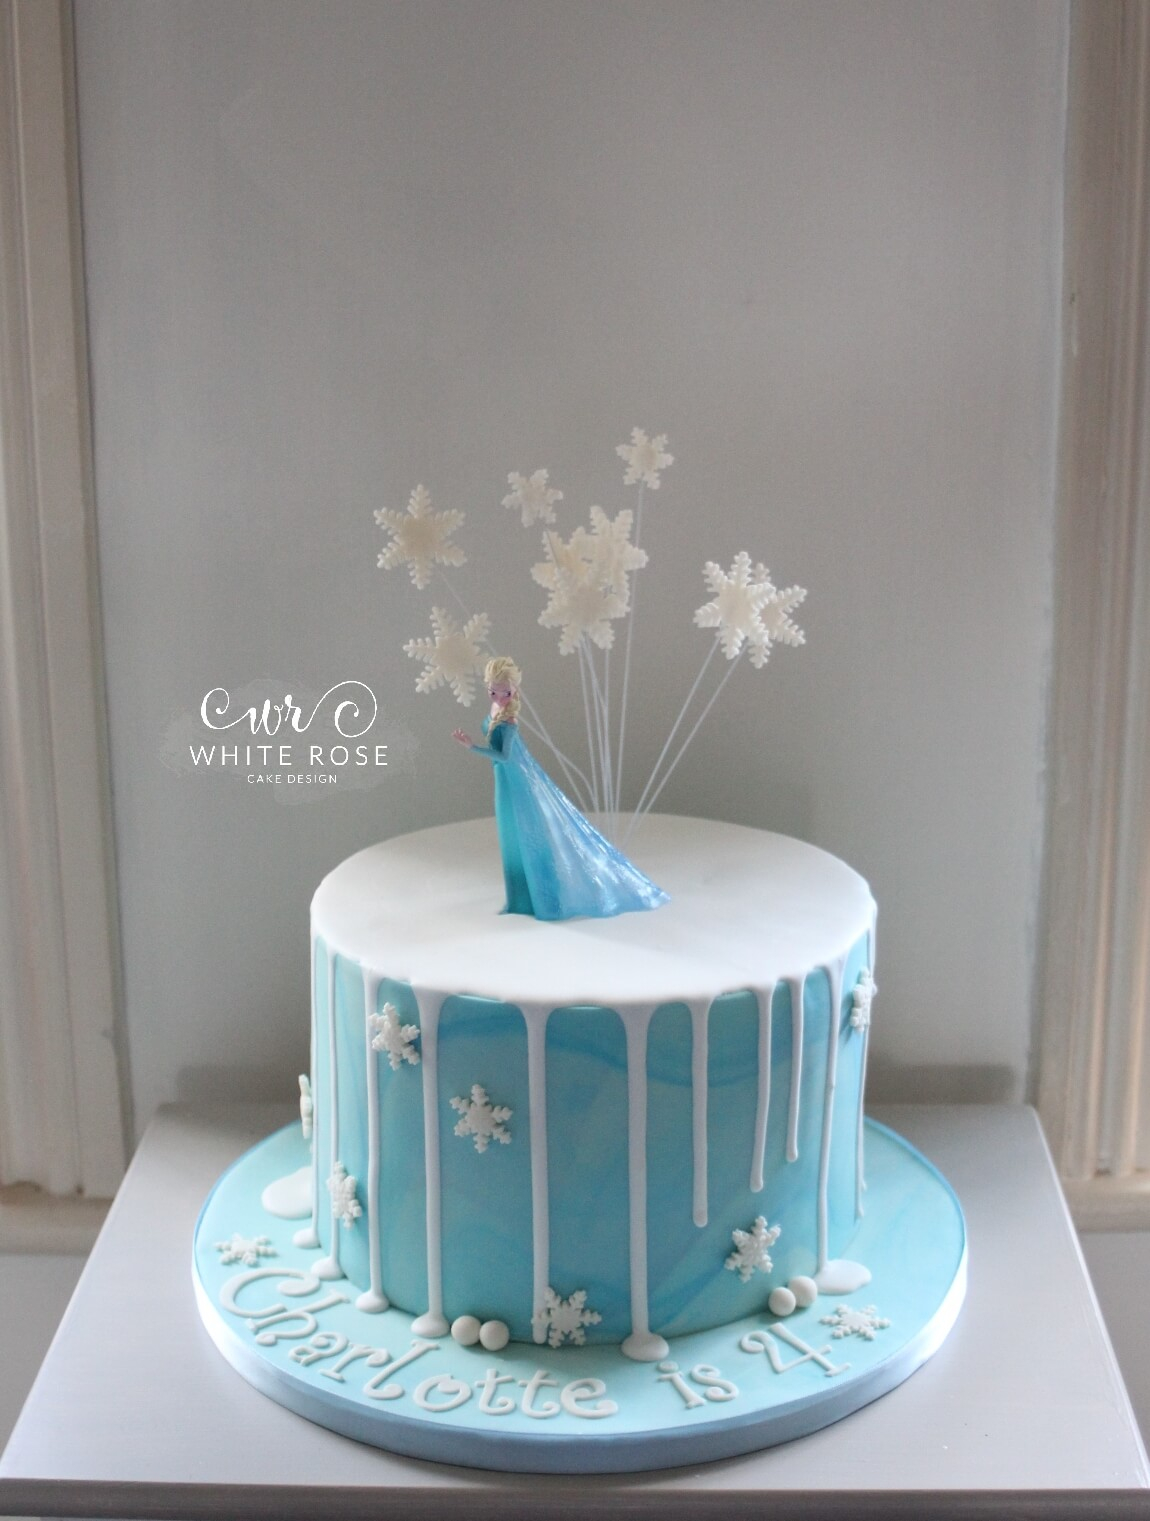 Frozen Themed Birthday Cakes Elsa From Frozen Themed 4th Birthday Cake White Rose Cake Design